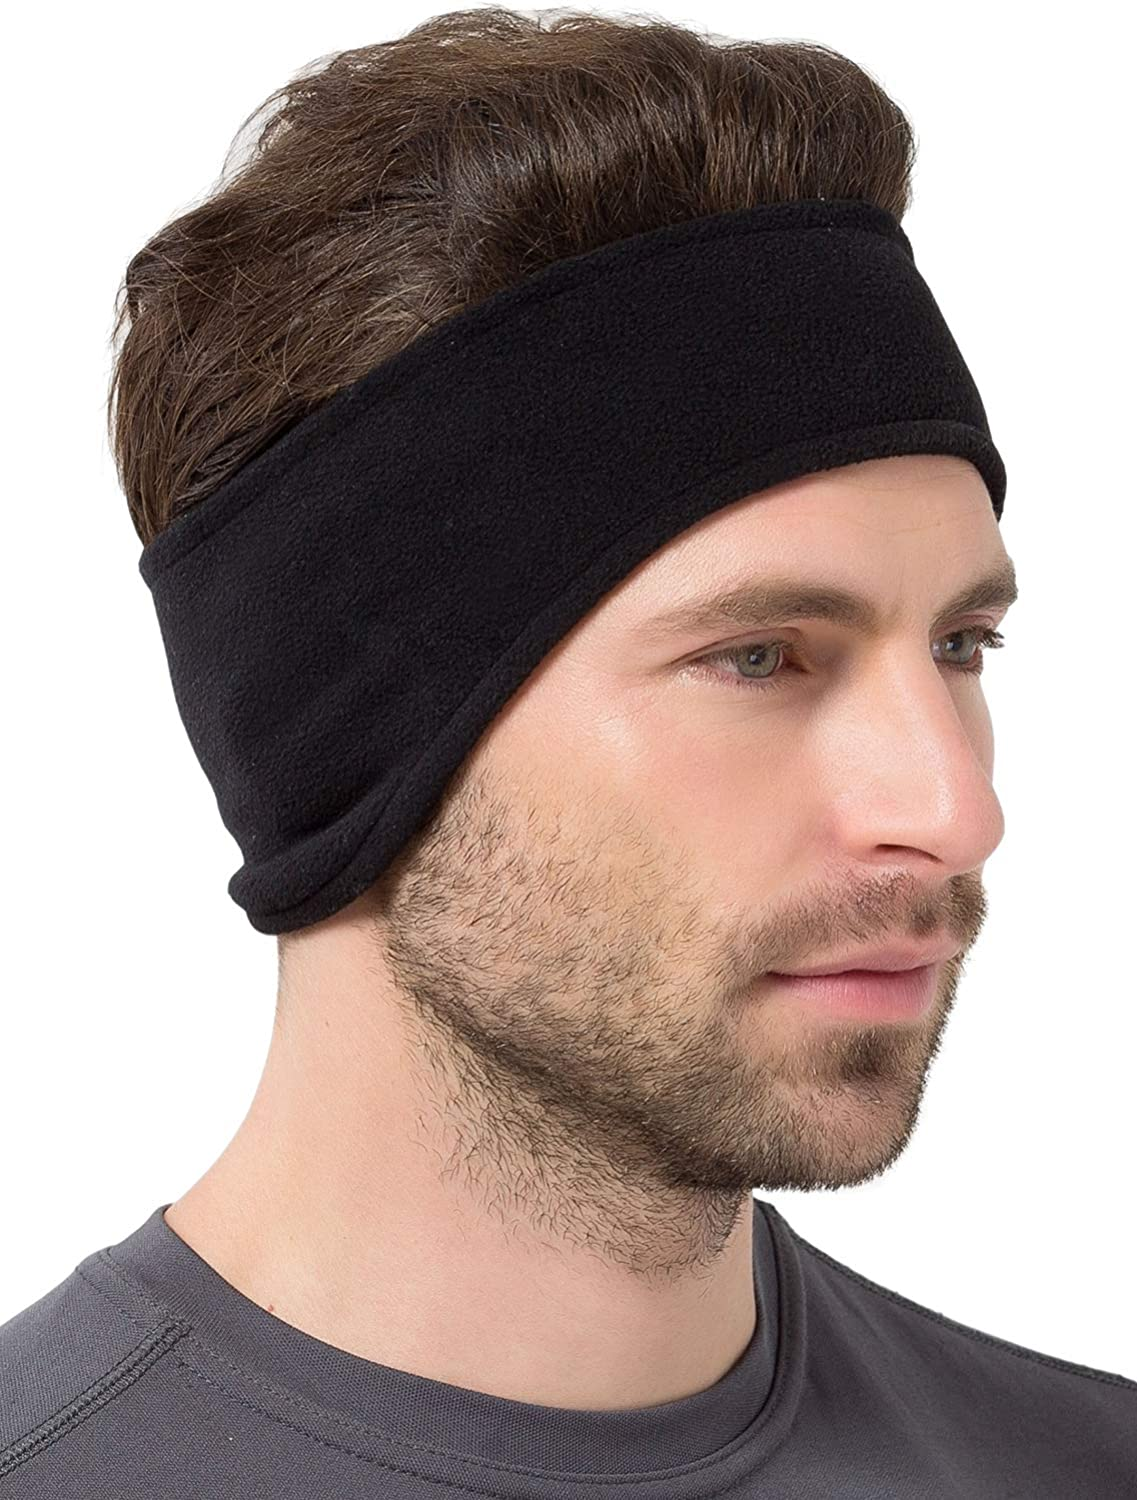 Black TOP HEADWEAR Fleece Ear Muffs